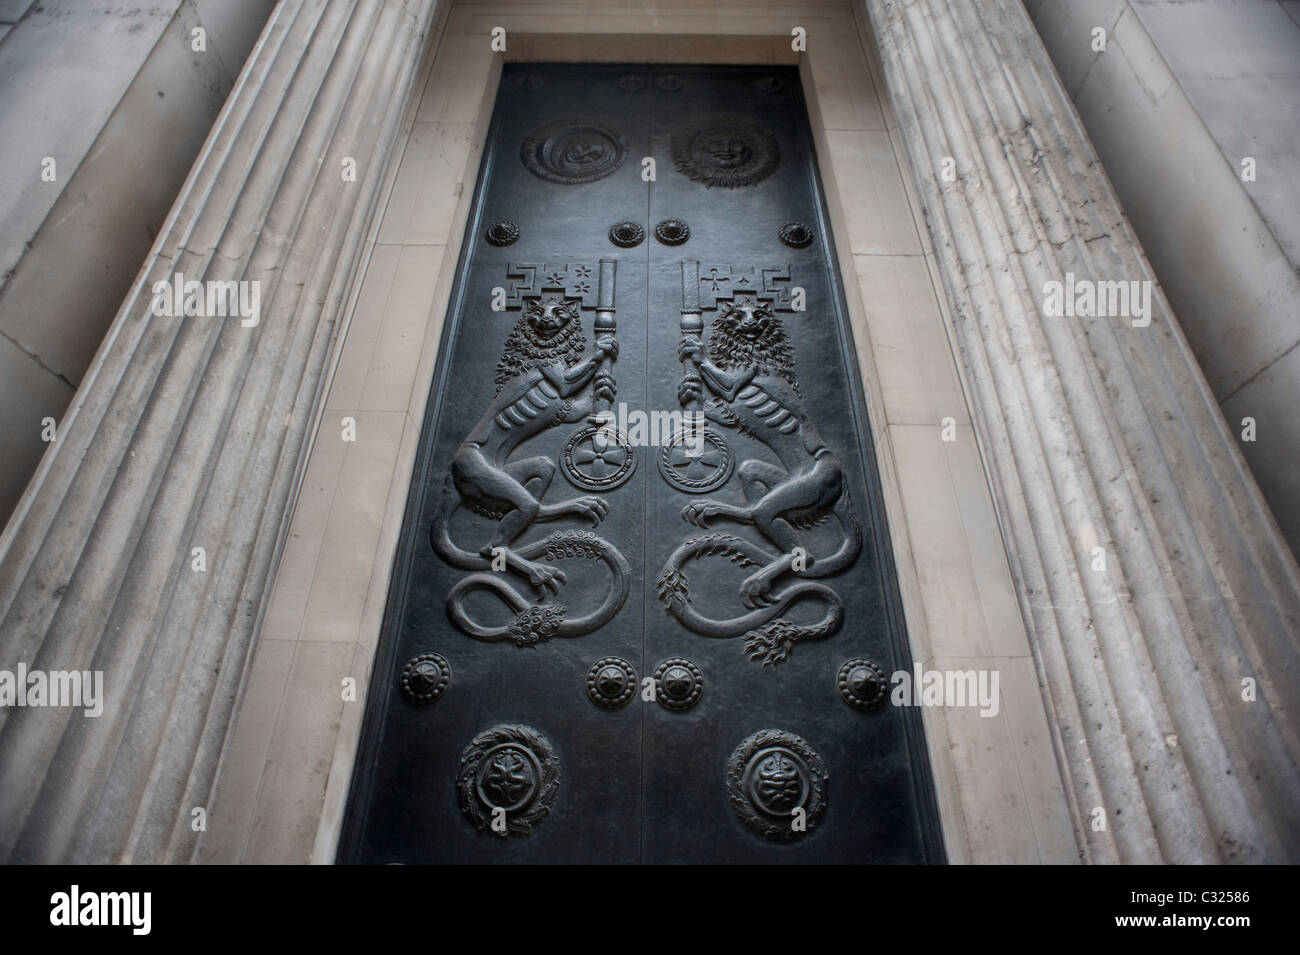 The Bank of England, Bank, London, 21st August 2009. - Stock Image